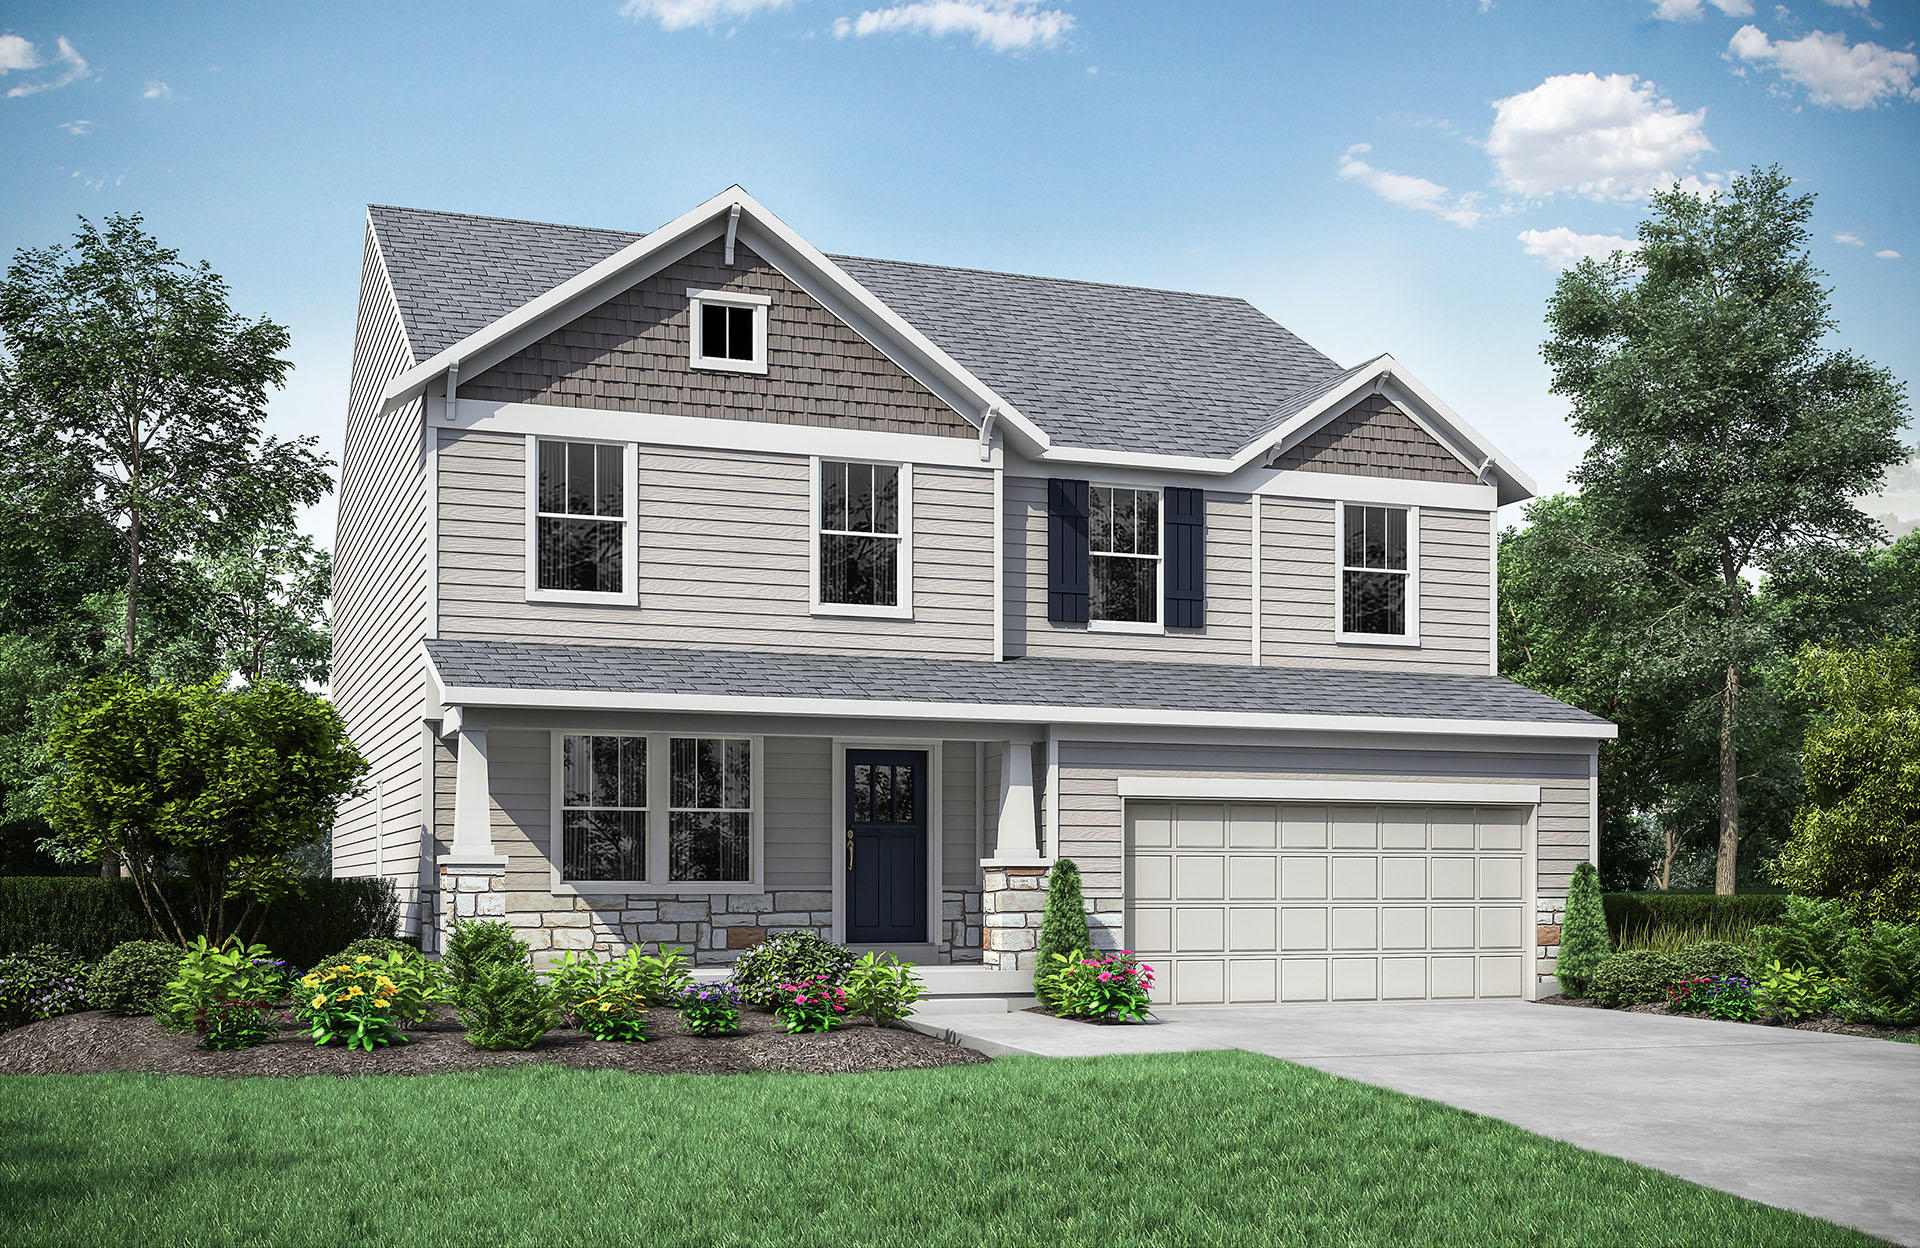 Northwood Plan For Sale Columbia Station Oh Trulia